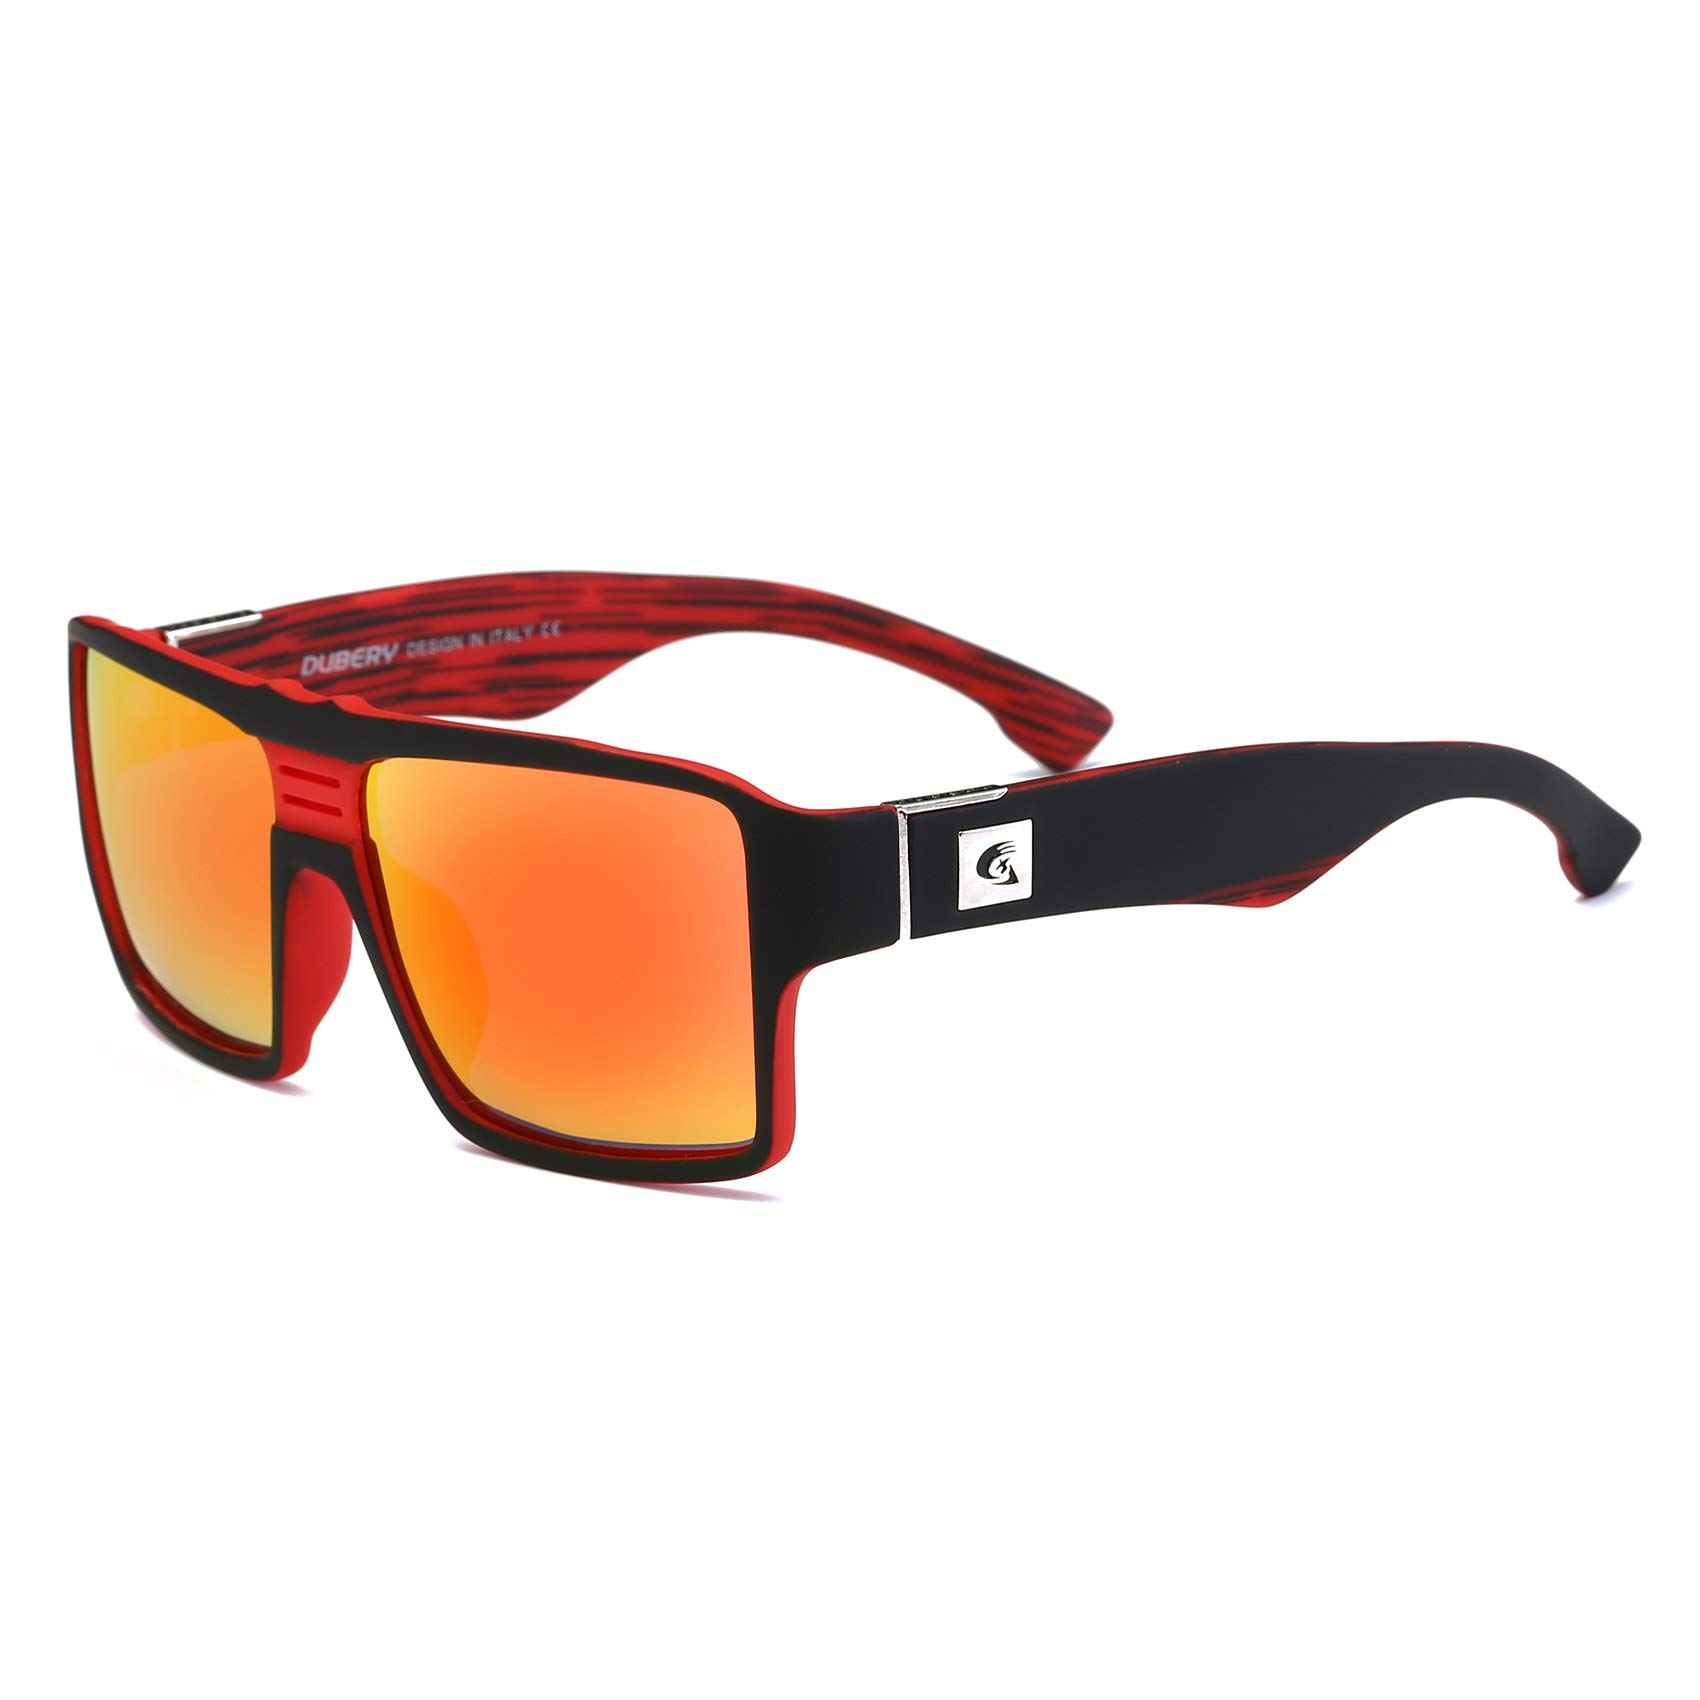 DUBERY Men Polarized Sunglasses Outdoor Driving Square Sport Fashion Glasses (#3) by DUBERY